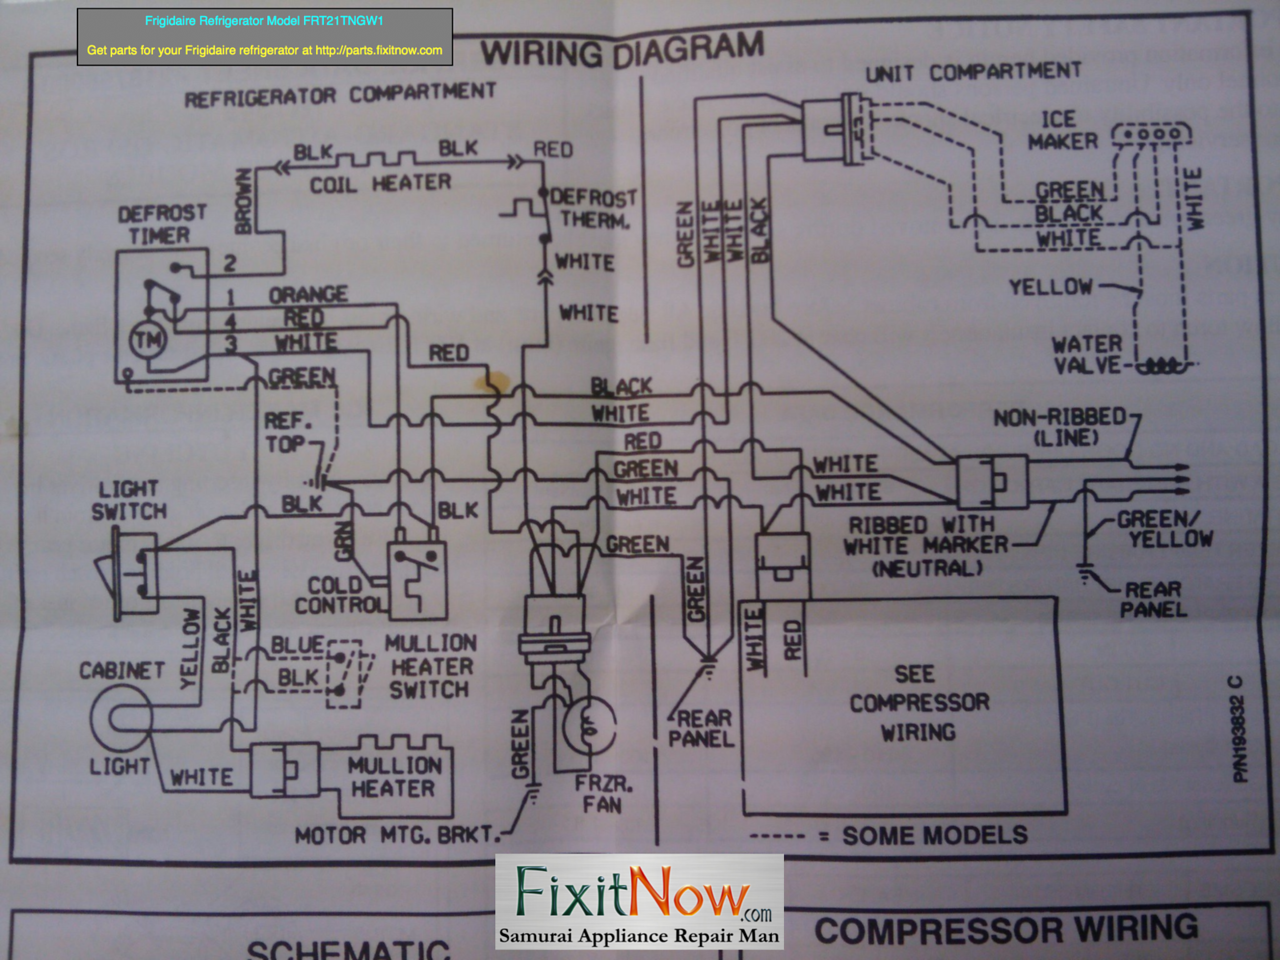 Frigidaire stove wiring diagram frigidaire stove wiring diagram wiring diagrams and schematics appliantology cheapraybanclubmaster Choice Image